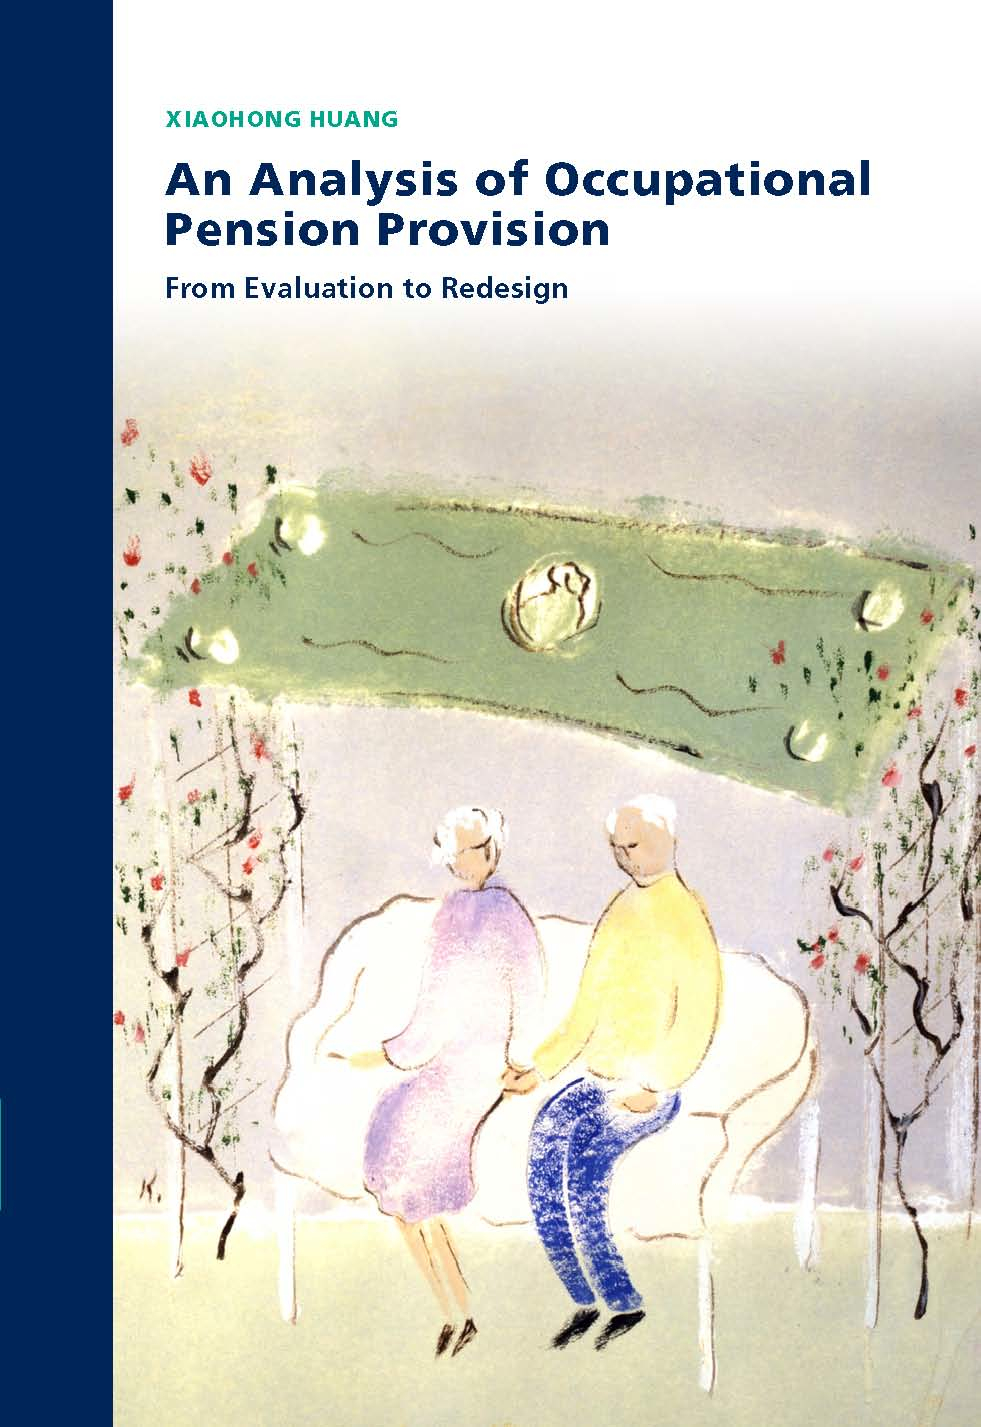 An Analysis of Occupational Pension Provision: From Evaluation to Redesign